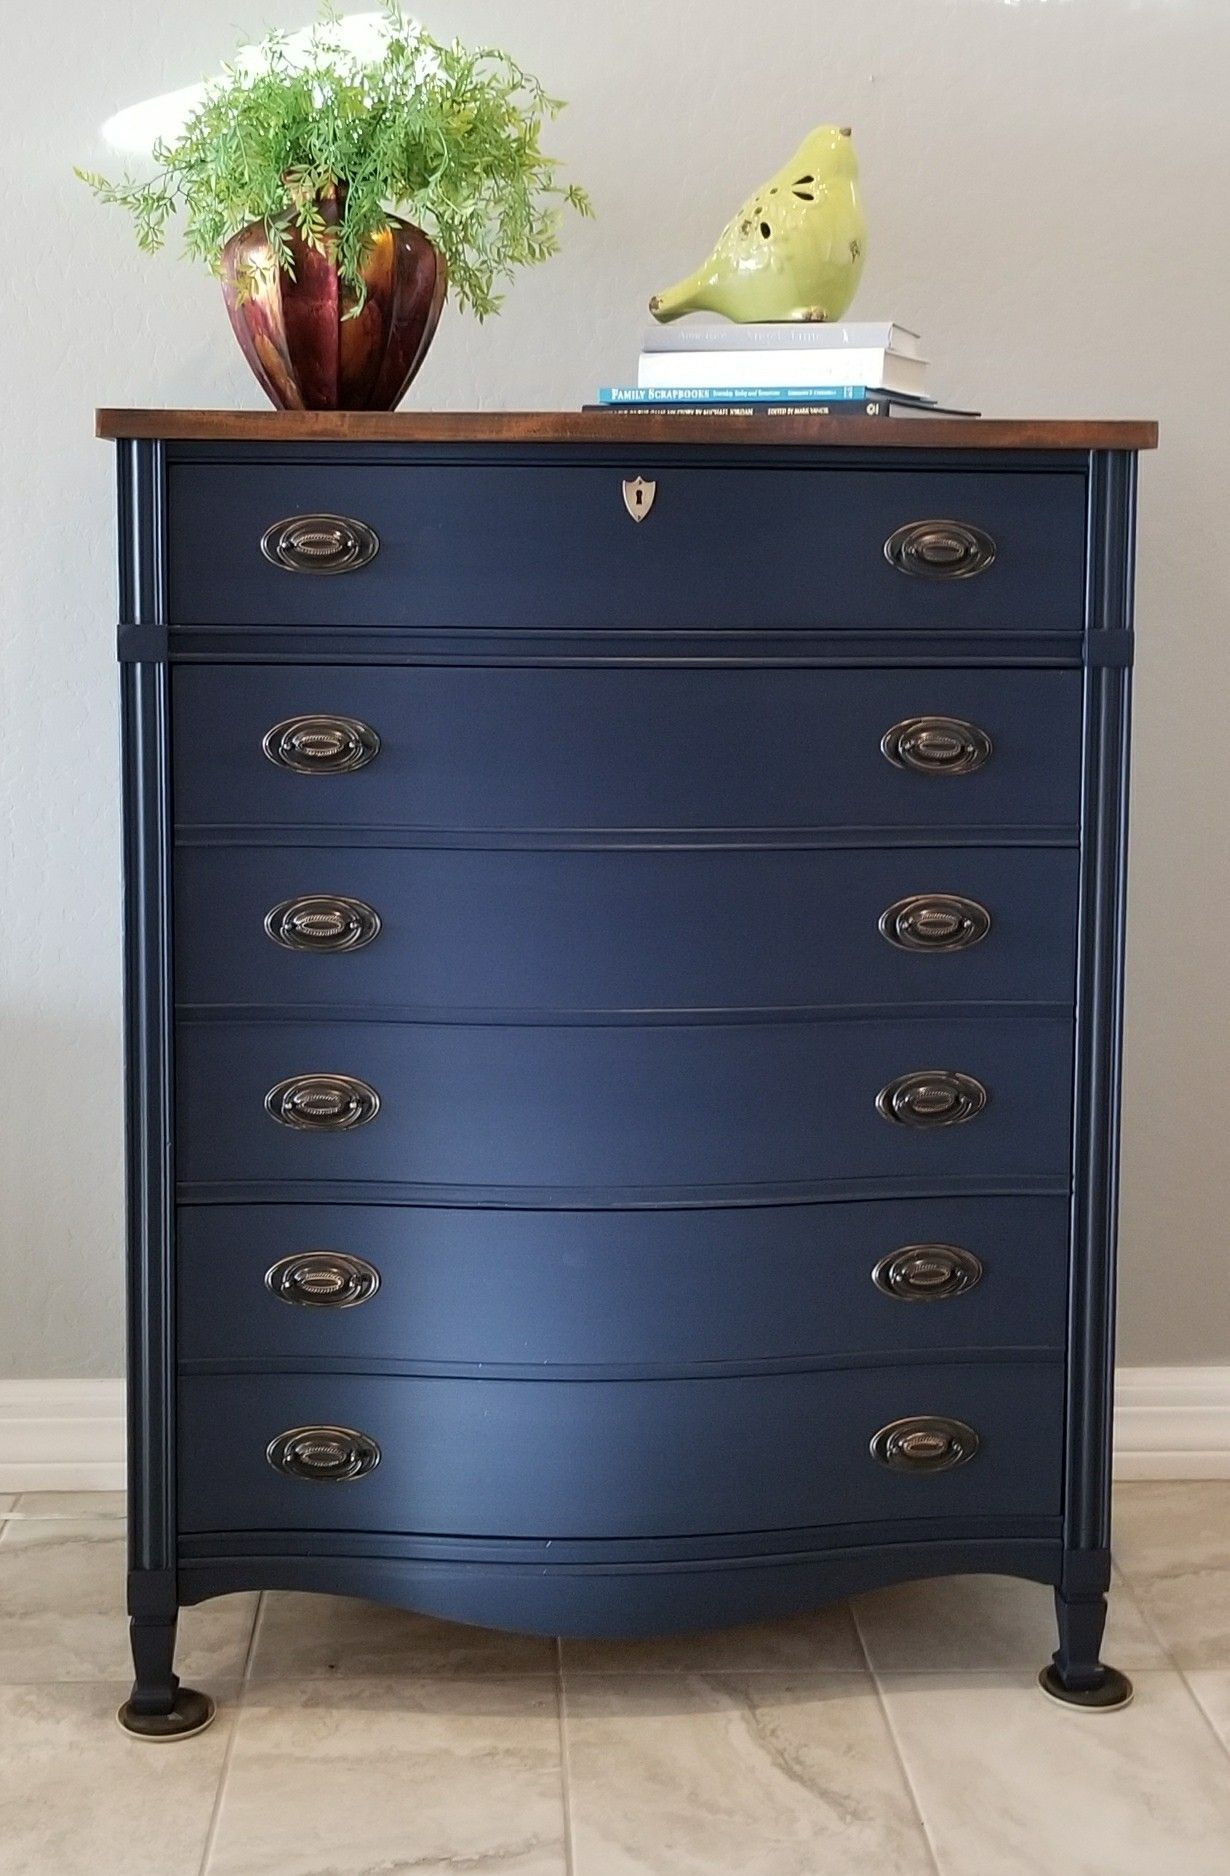 Cheap Antique Looking Furniture Best Of Vintage Style Furniture